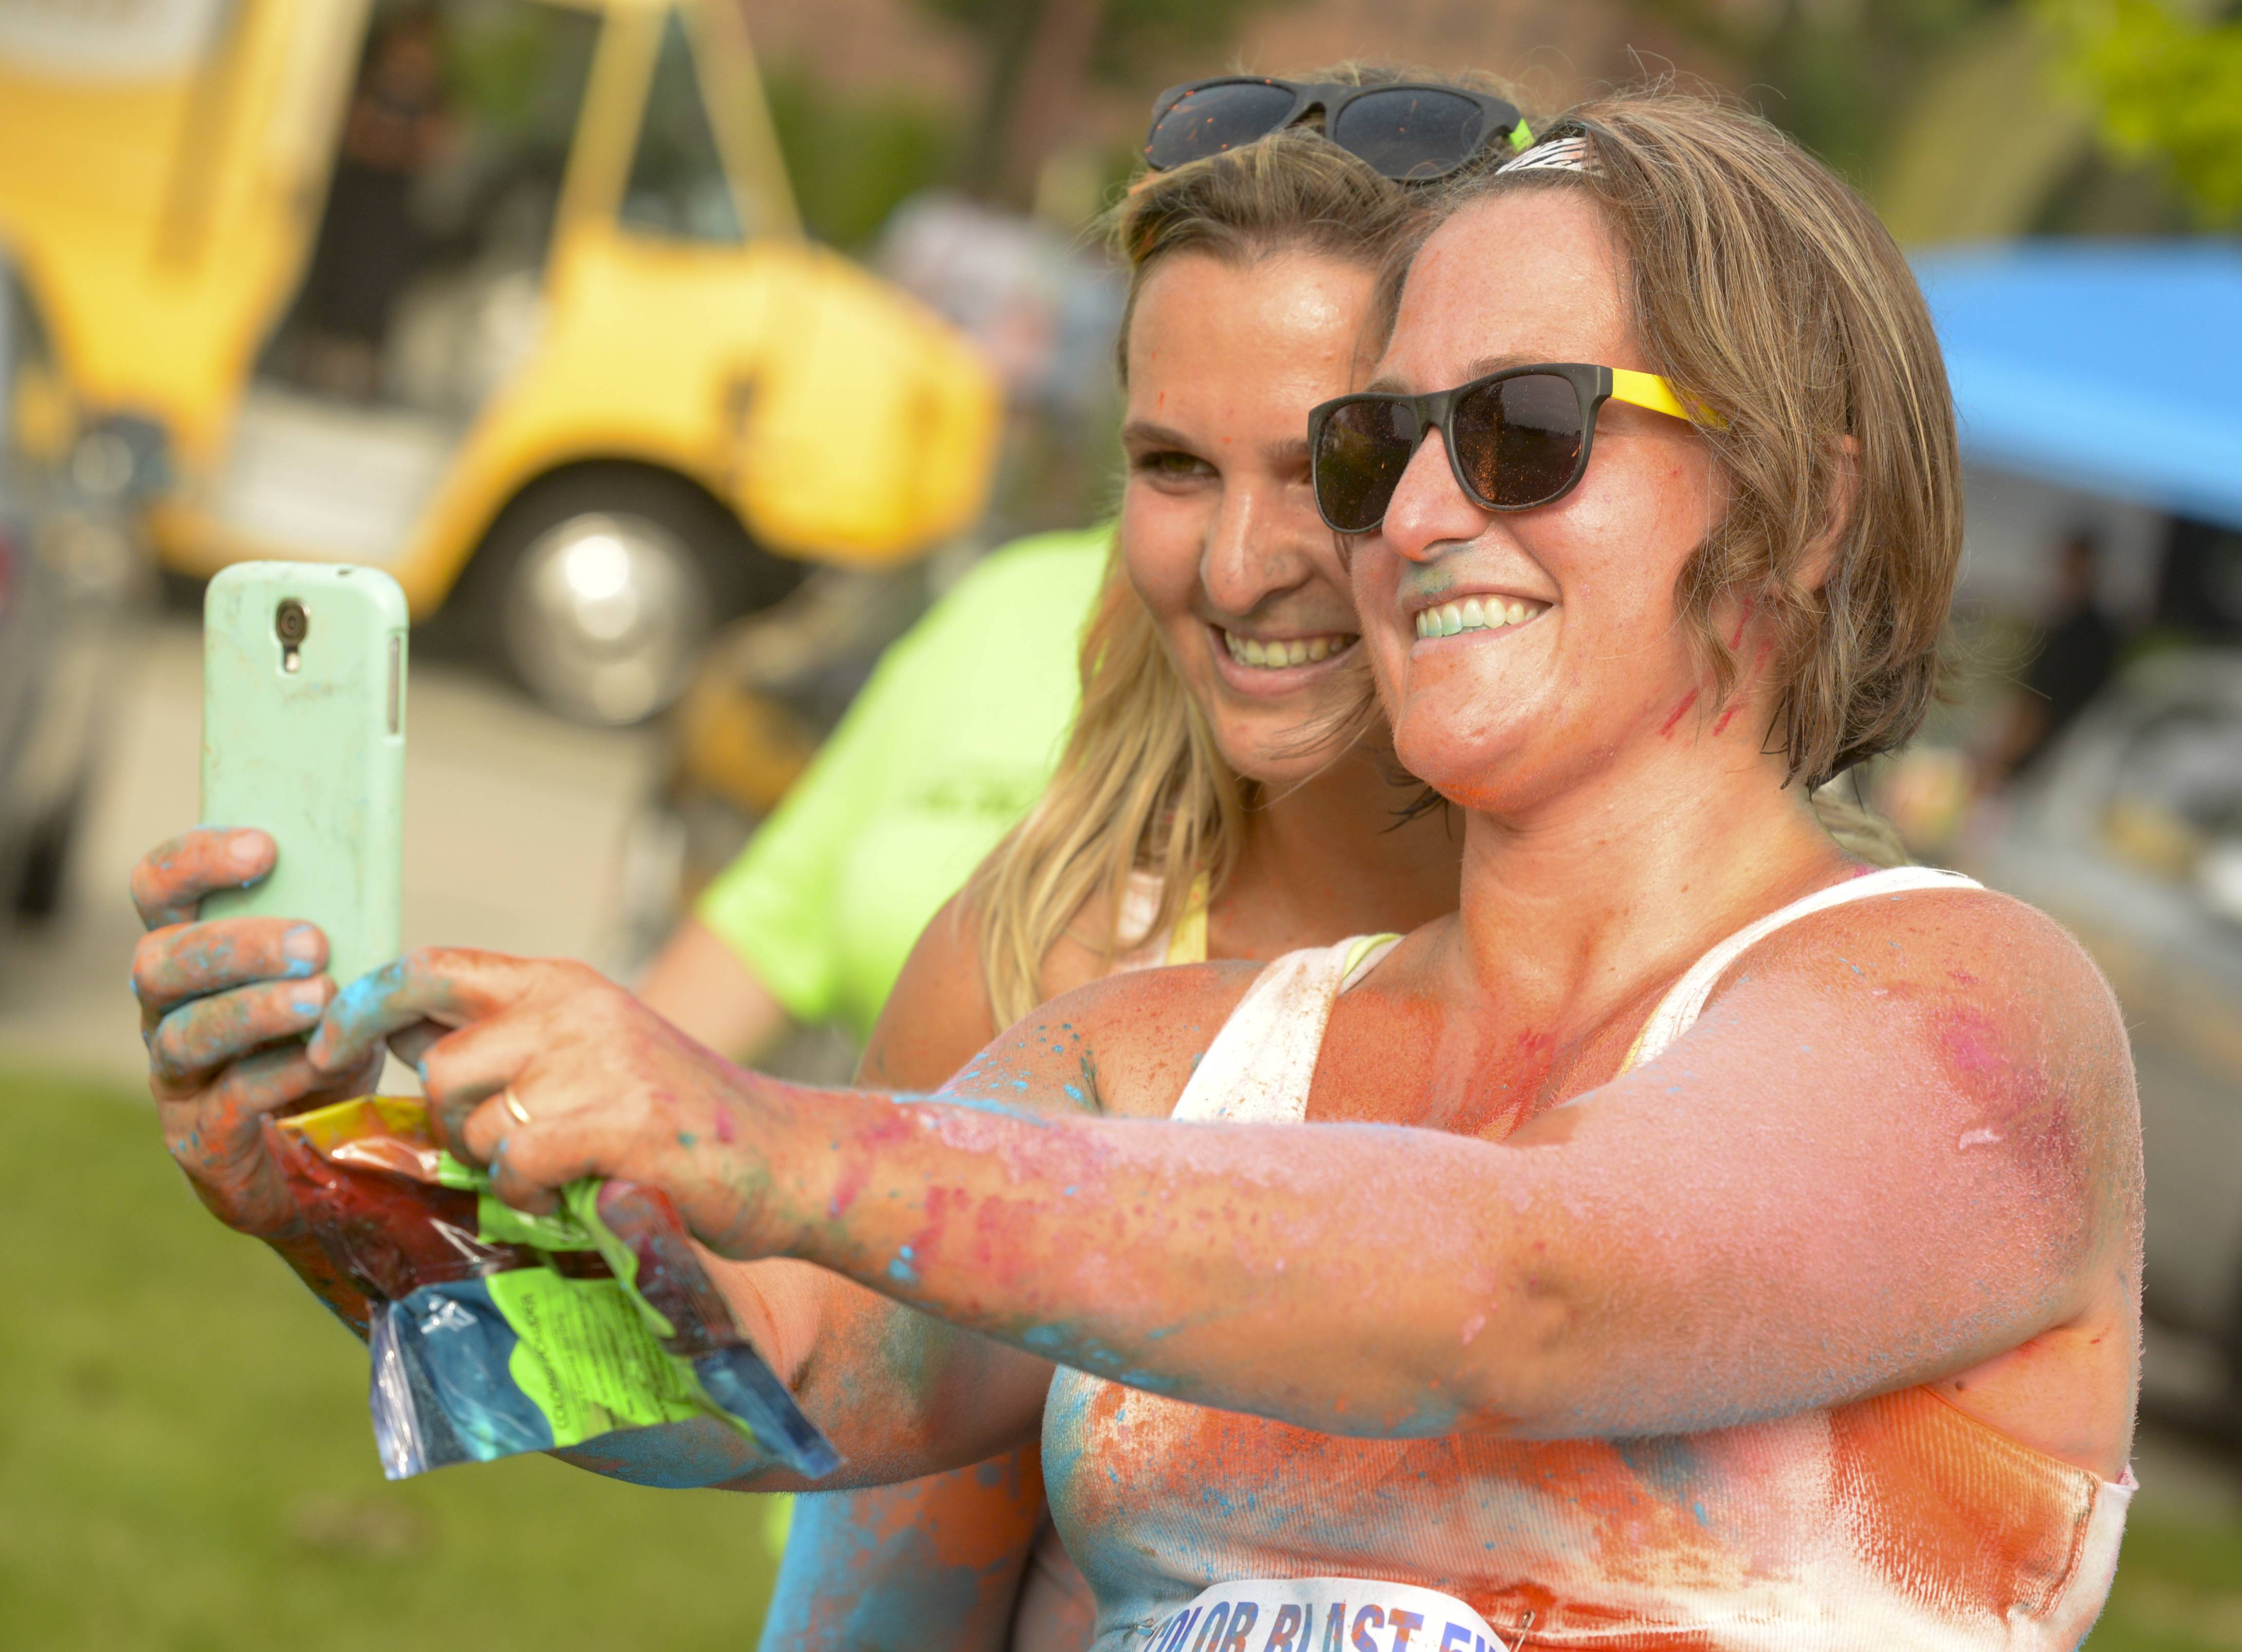 Courtney Joyce of Lake in the Hills and Maria Churak of Fox River Grove take a selfie after finishing their first color run Saturday, the 2nd annual Active Care ColorBlast 5K in Arlington Heights to support Clearbrook.